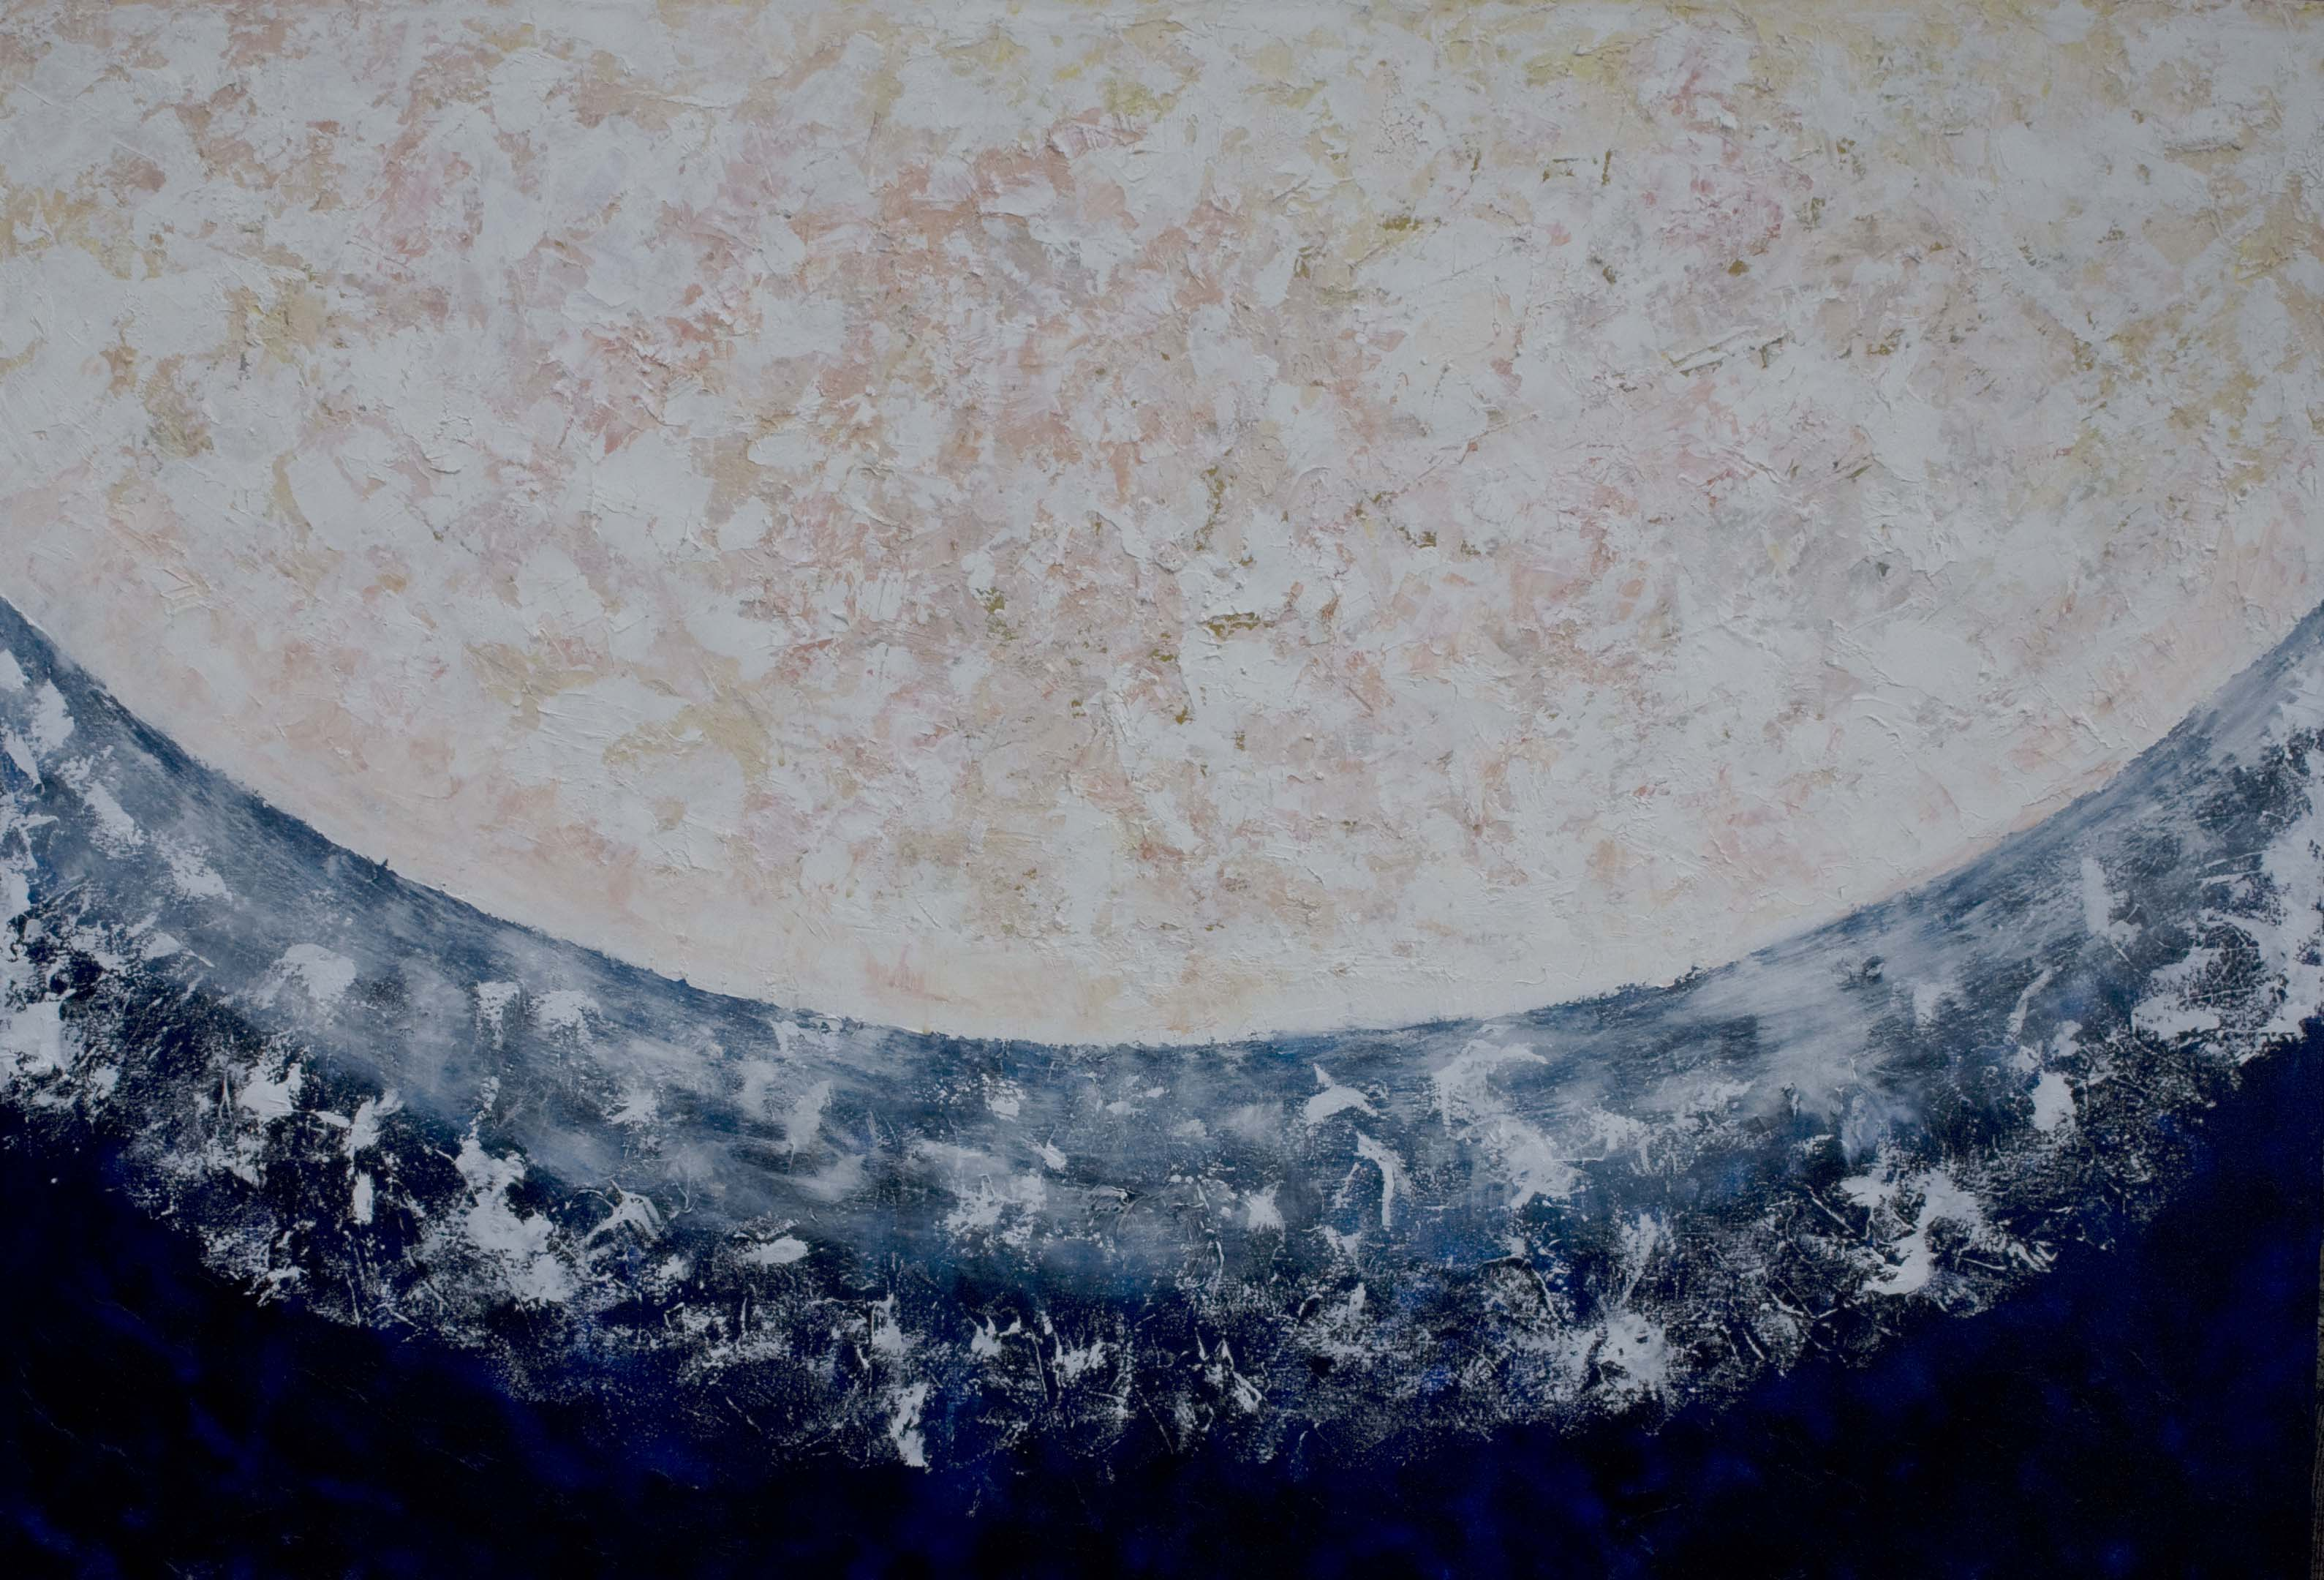 moon painting with  lot of texture in creamy colors against dark blue with light sparking off it